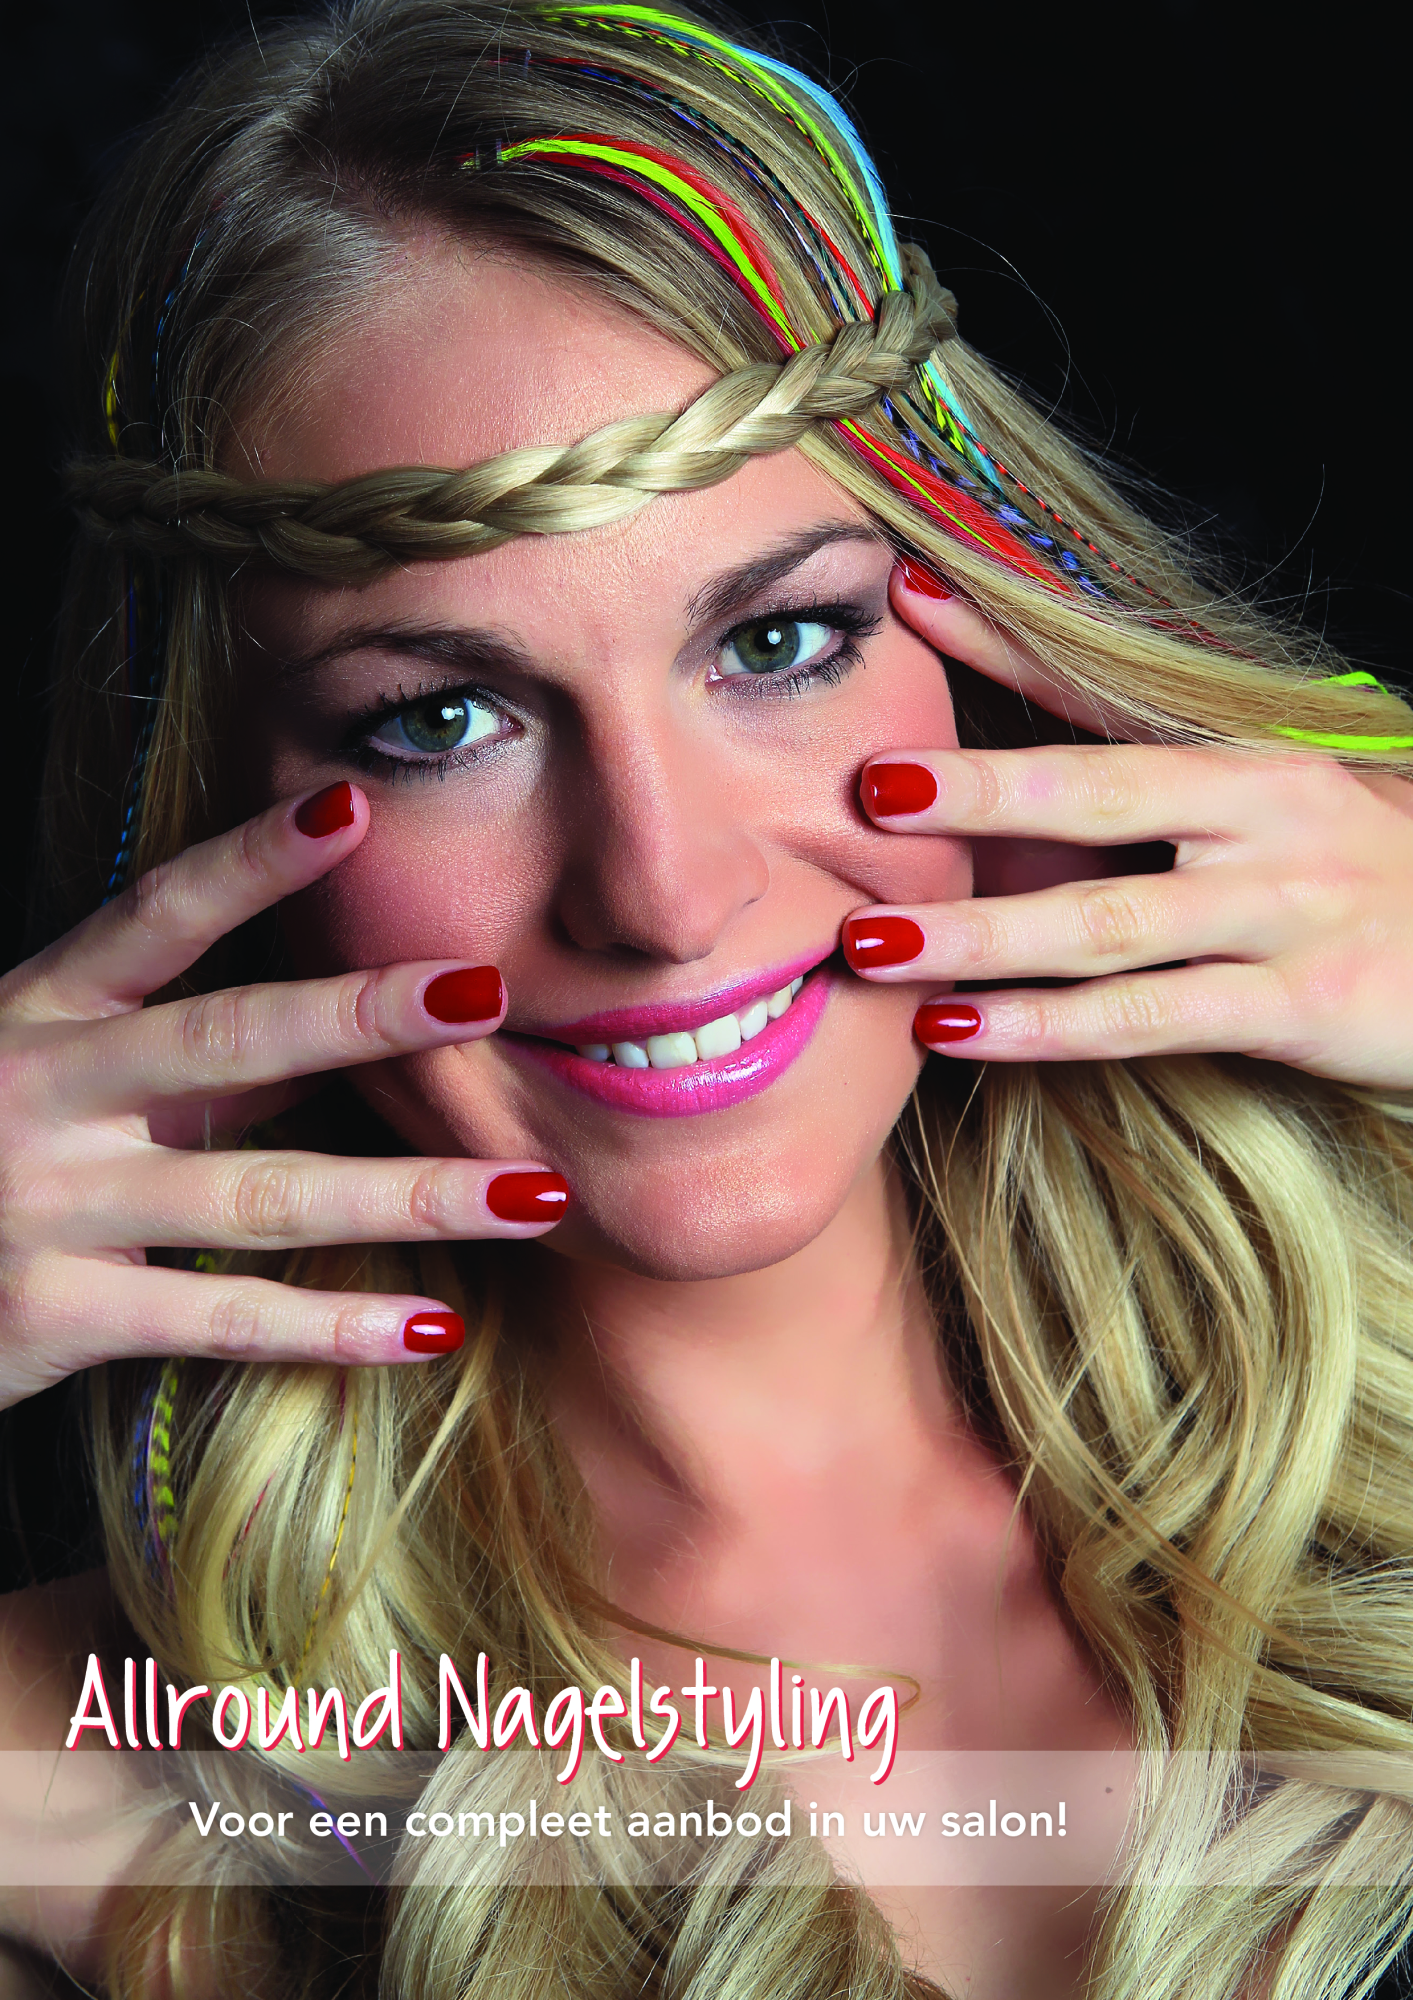 Allround Nagelstyliste Opleiding - Nailcare Manon